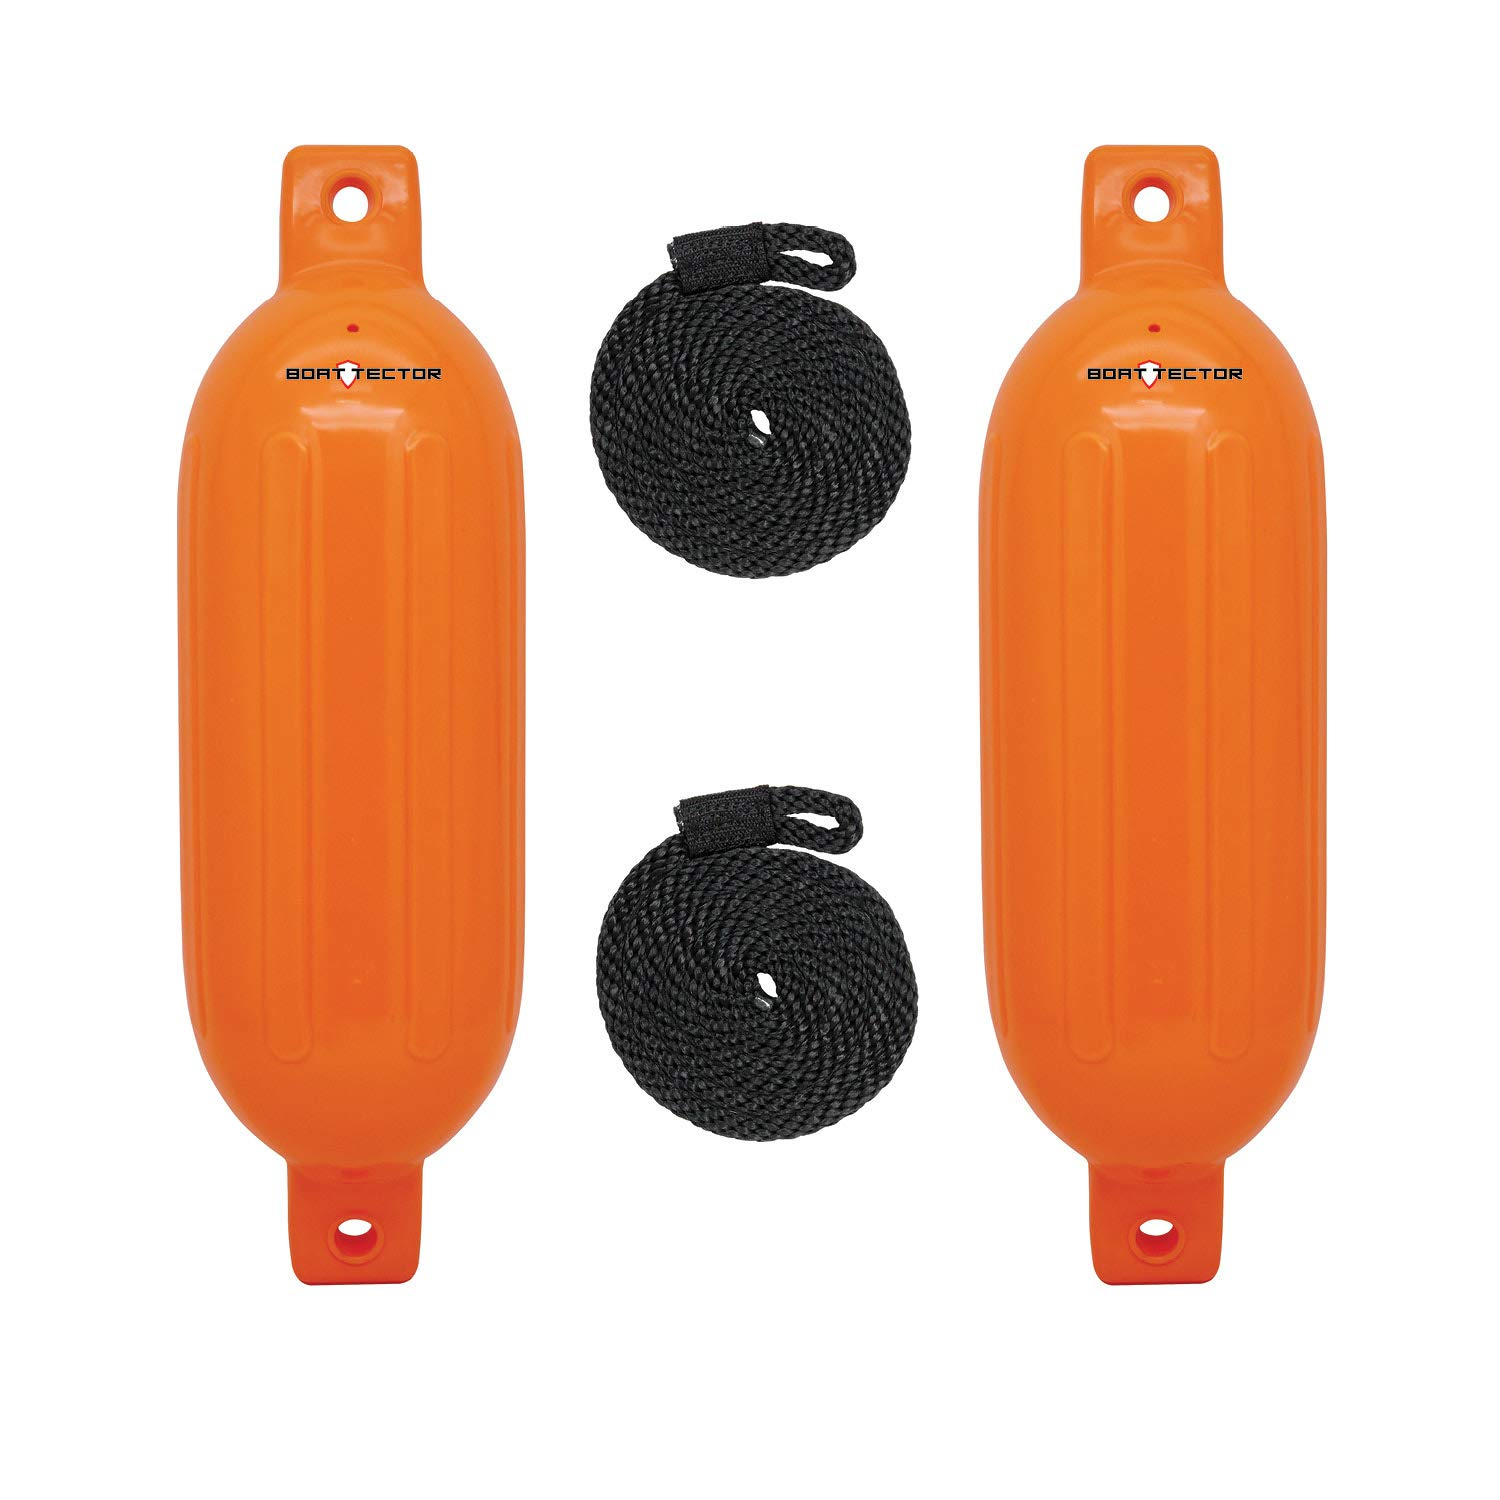 Extreme Max Standard 3006.7611 BoatTector Inflatable Fender Value 2-Pack-8.5'' x 27'', Neon Orange